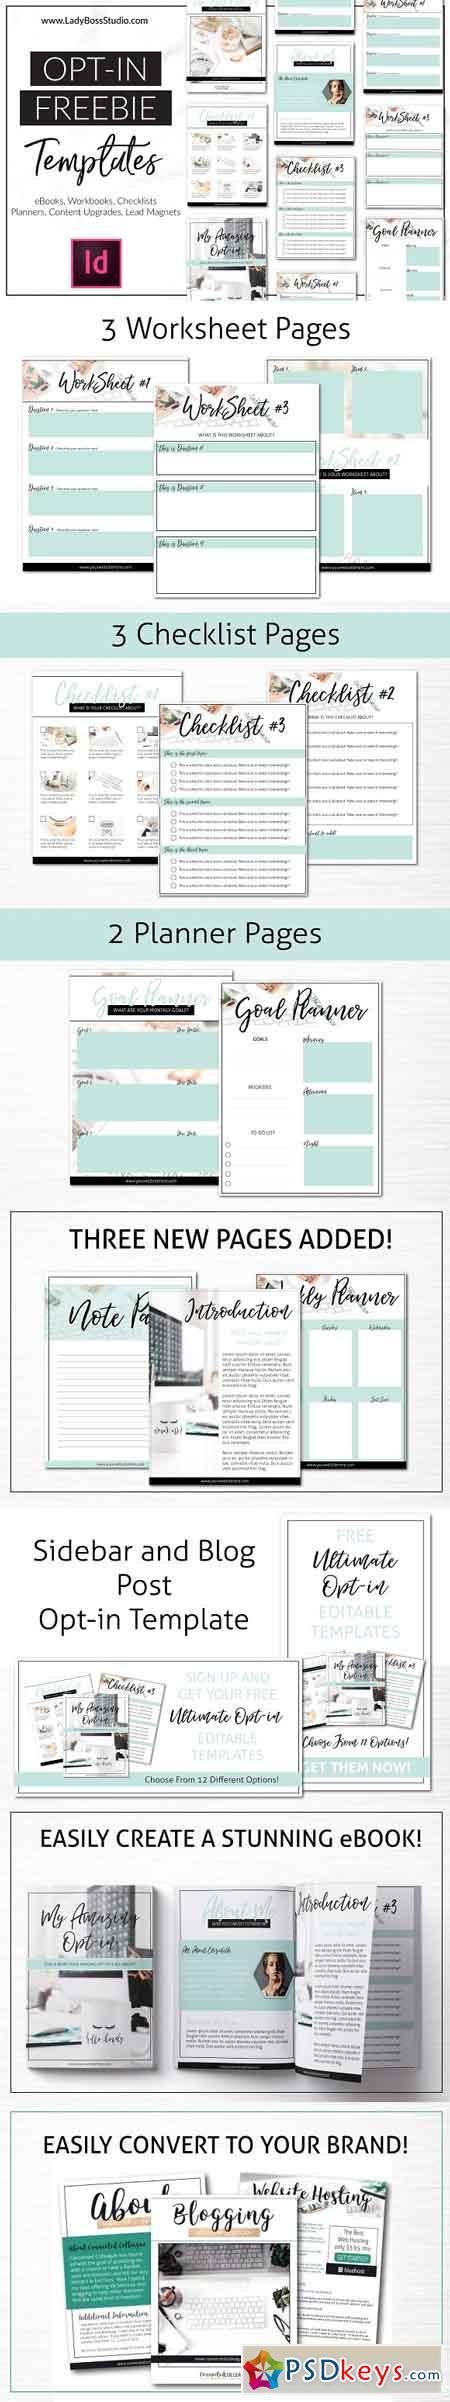 InDesign Opt-In Freebie Templates 2886609